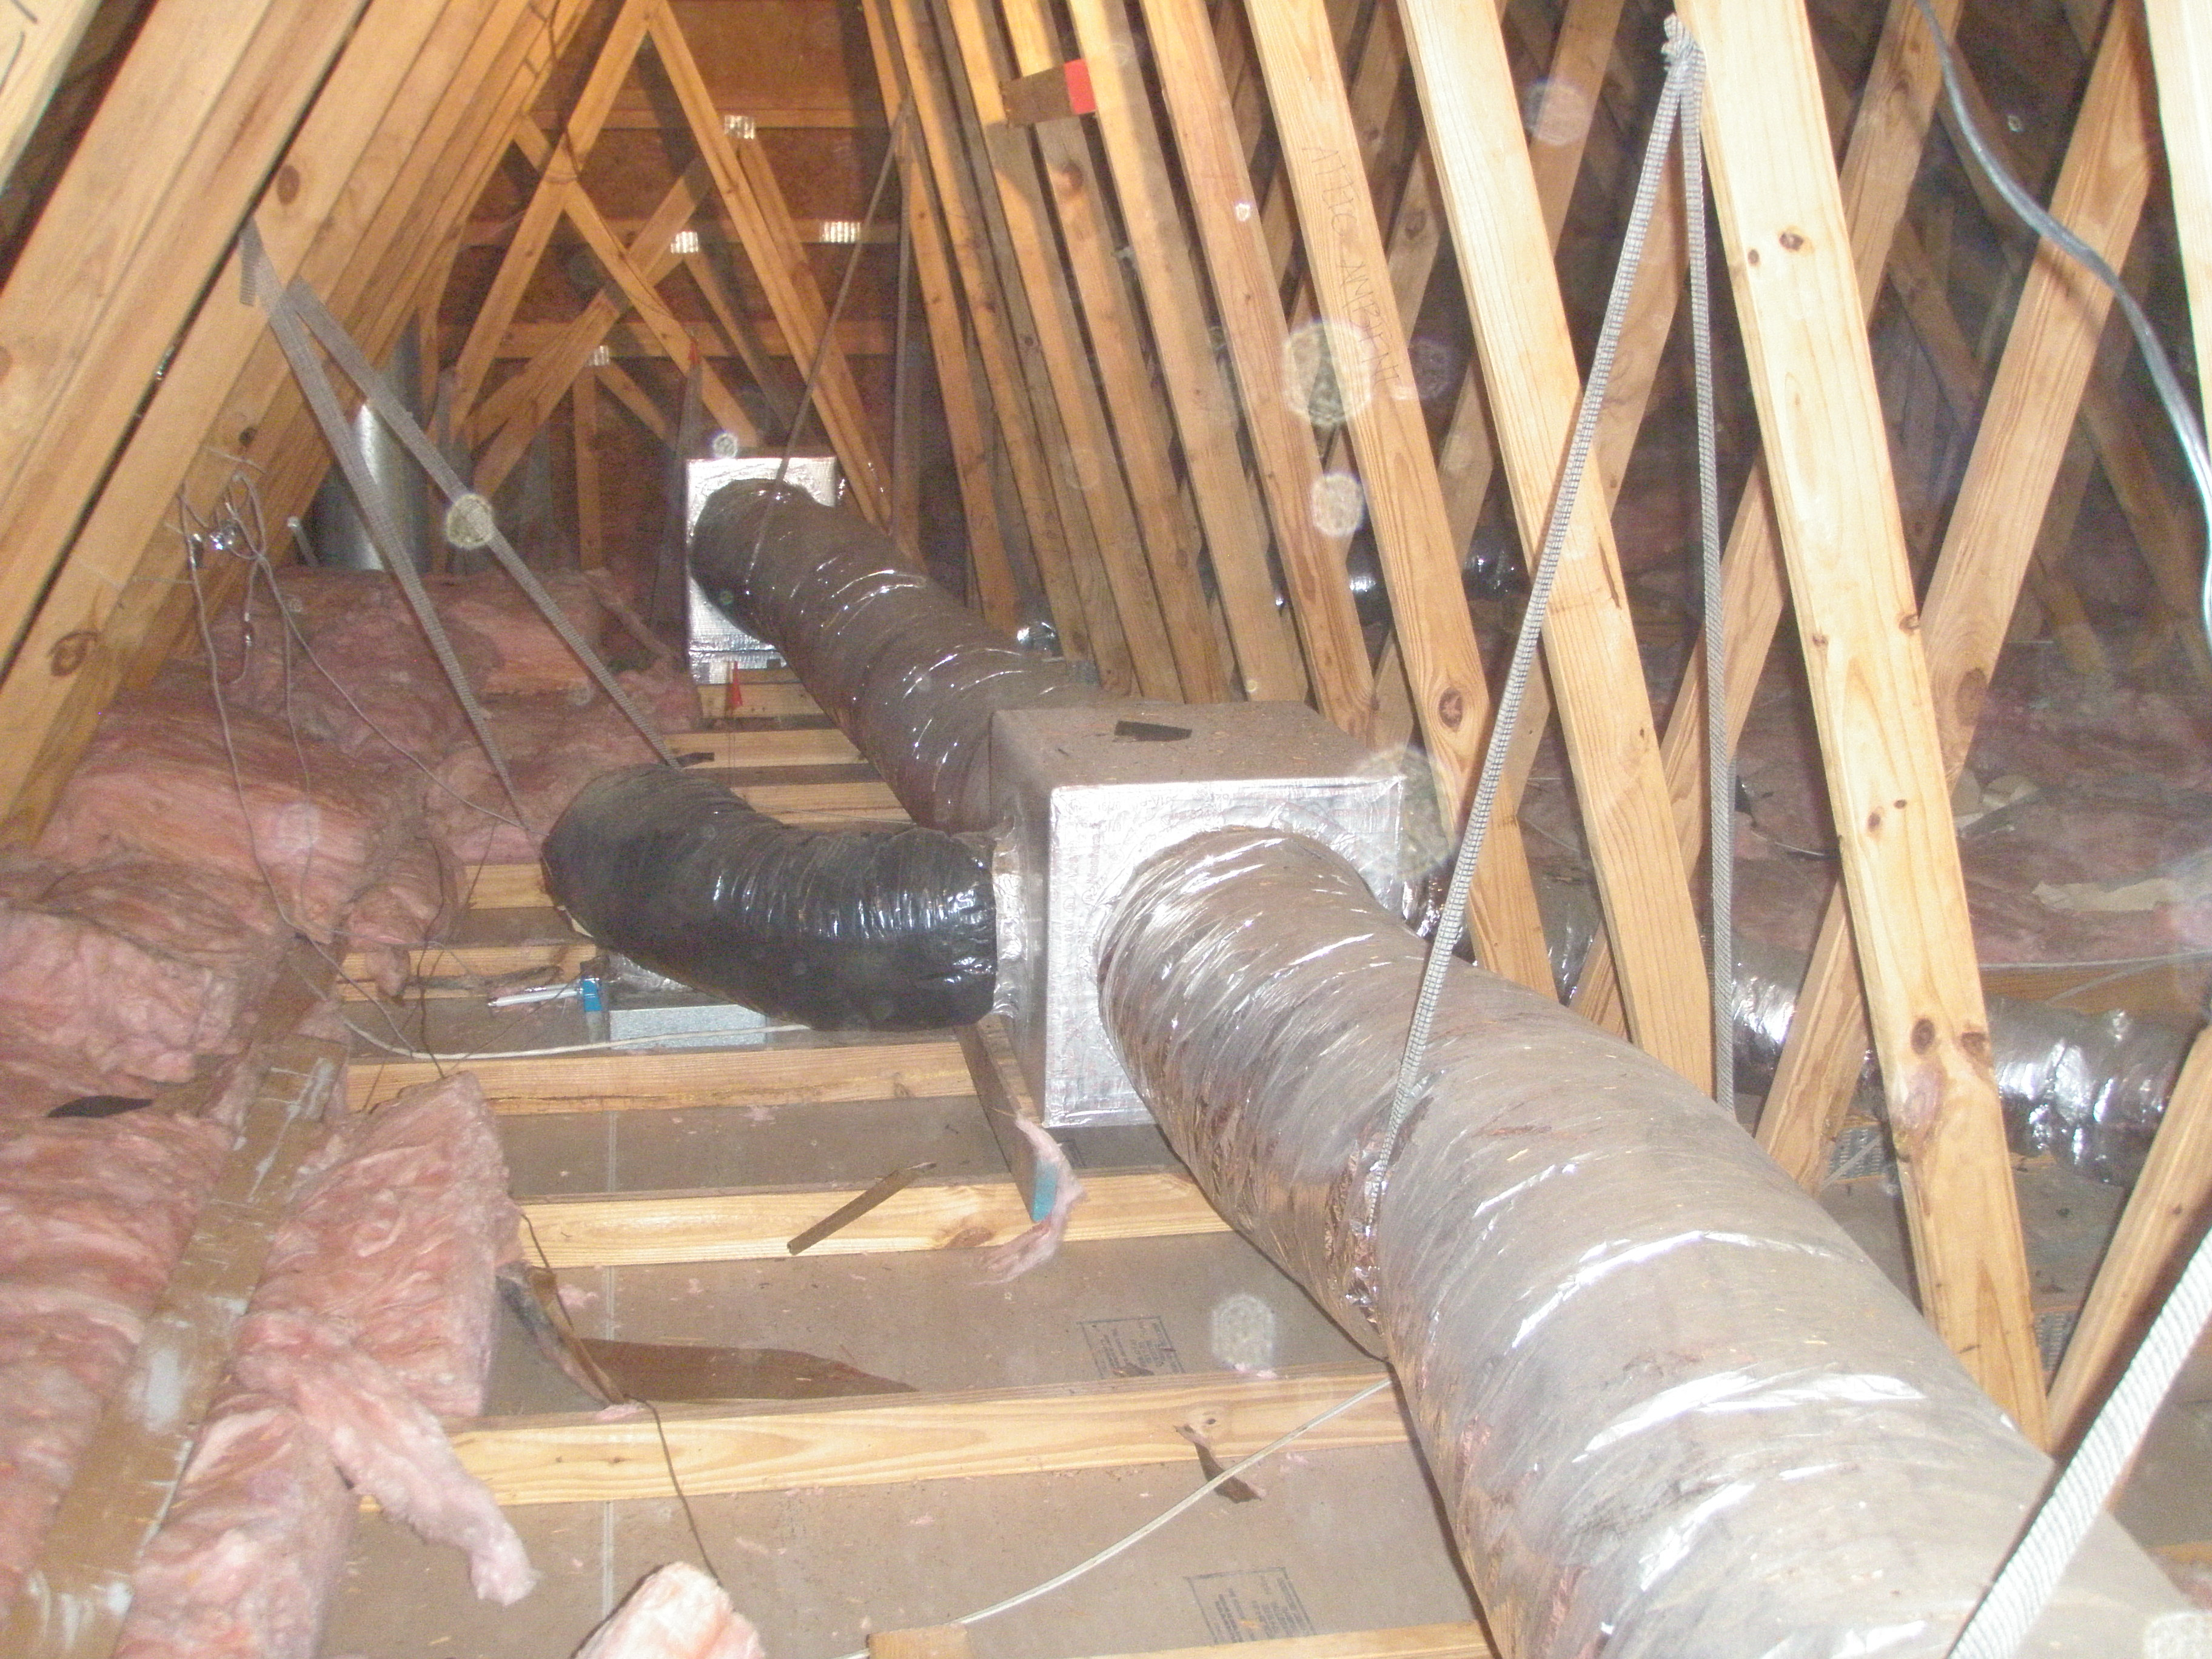 A ducted central return brings air from central return registers back to the air handler through insulated, air-sealed ducts